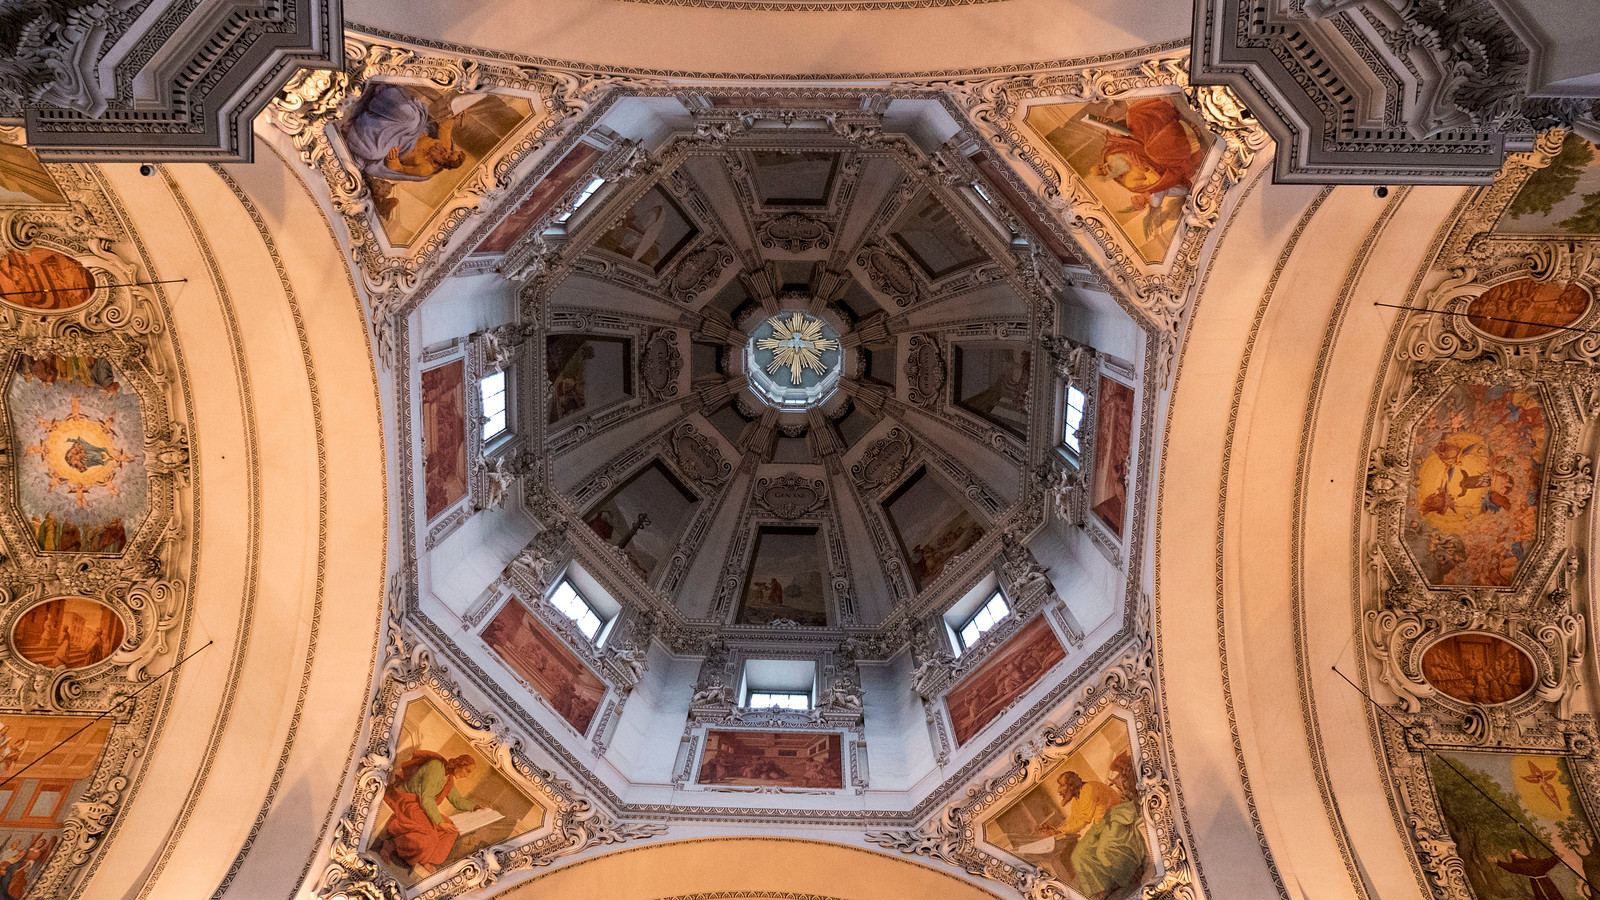 Salzburg Cathedral - The best things to do in Salzburg Austria - Salzburg attractions and sightseeing